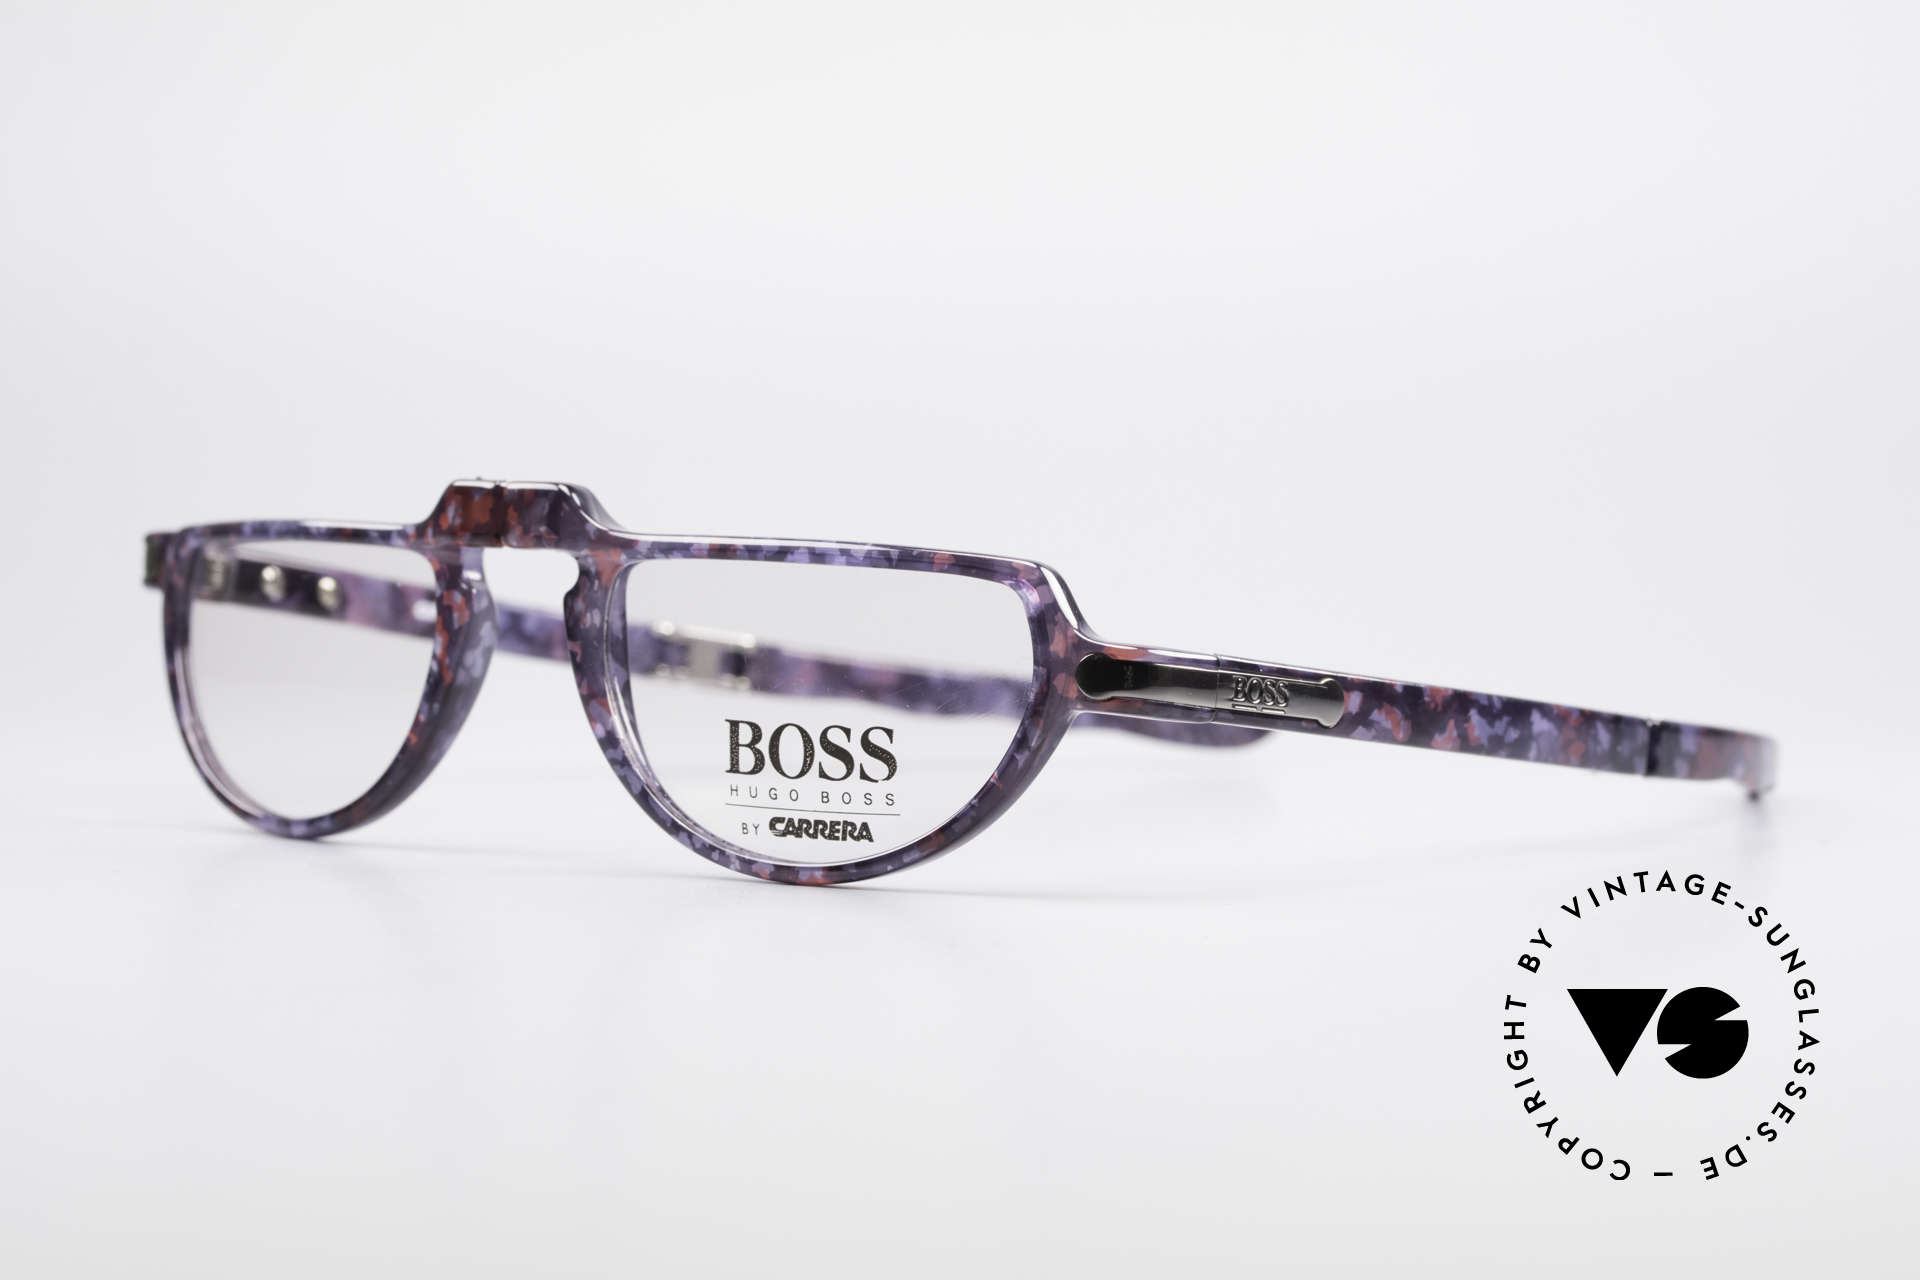 BOSS 5103 Folding Reading Eyeglasses, high-end OPTYL material (lightweight & durable), Made for Men and Women